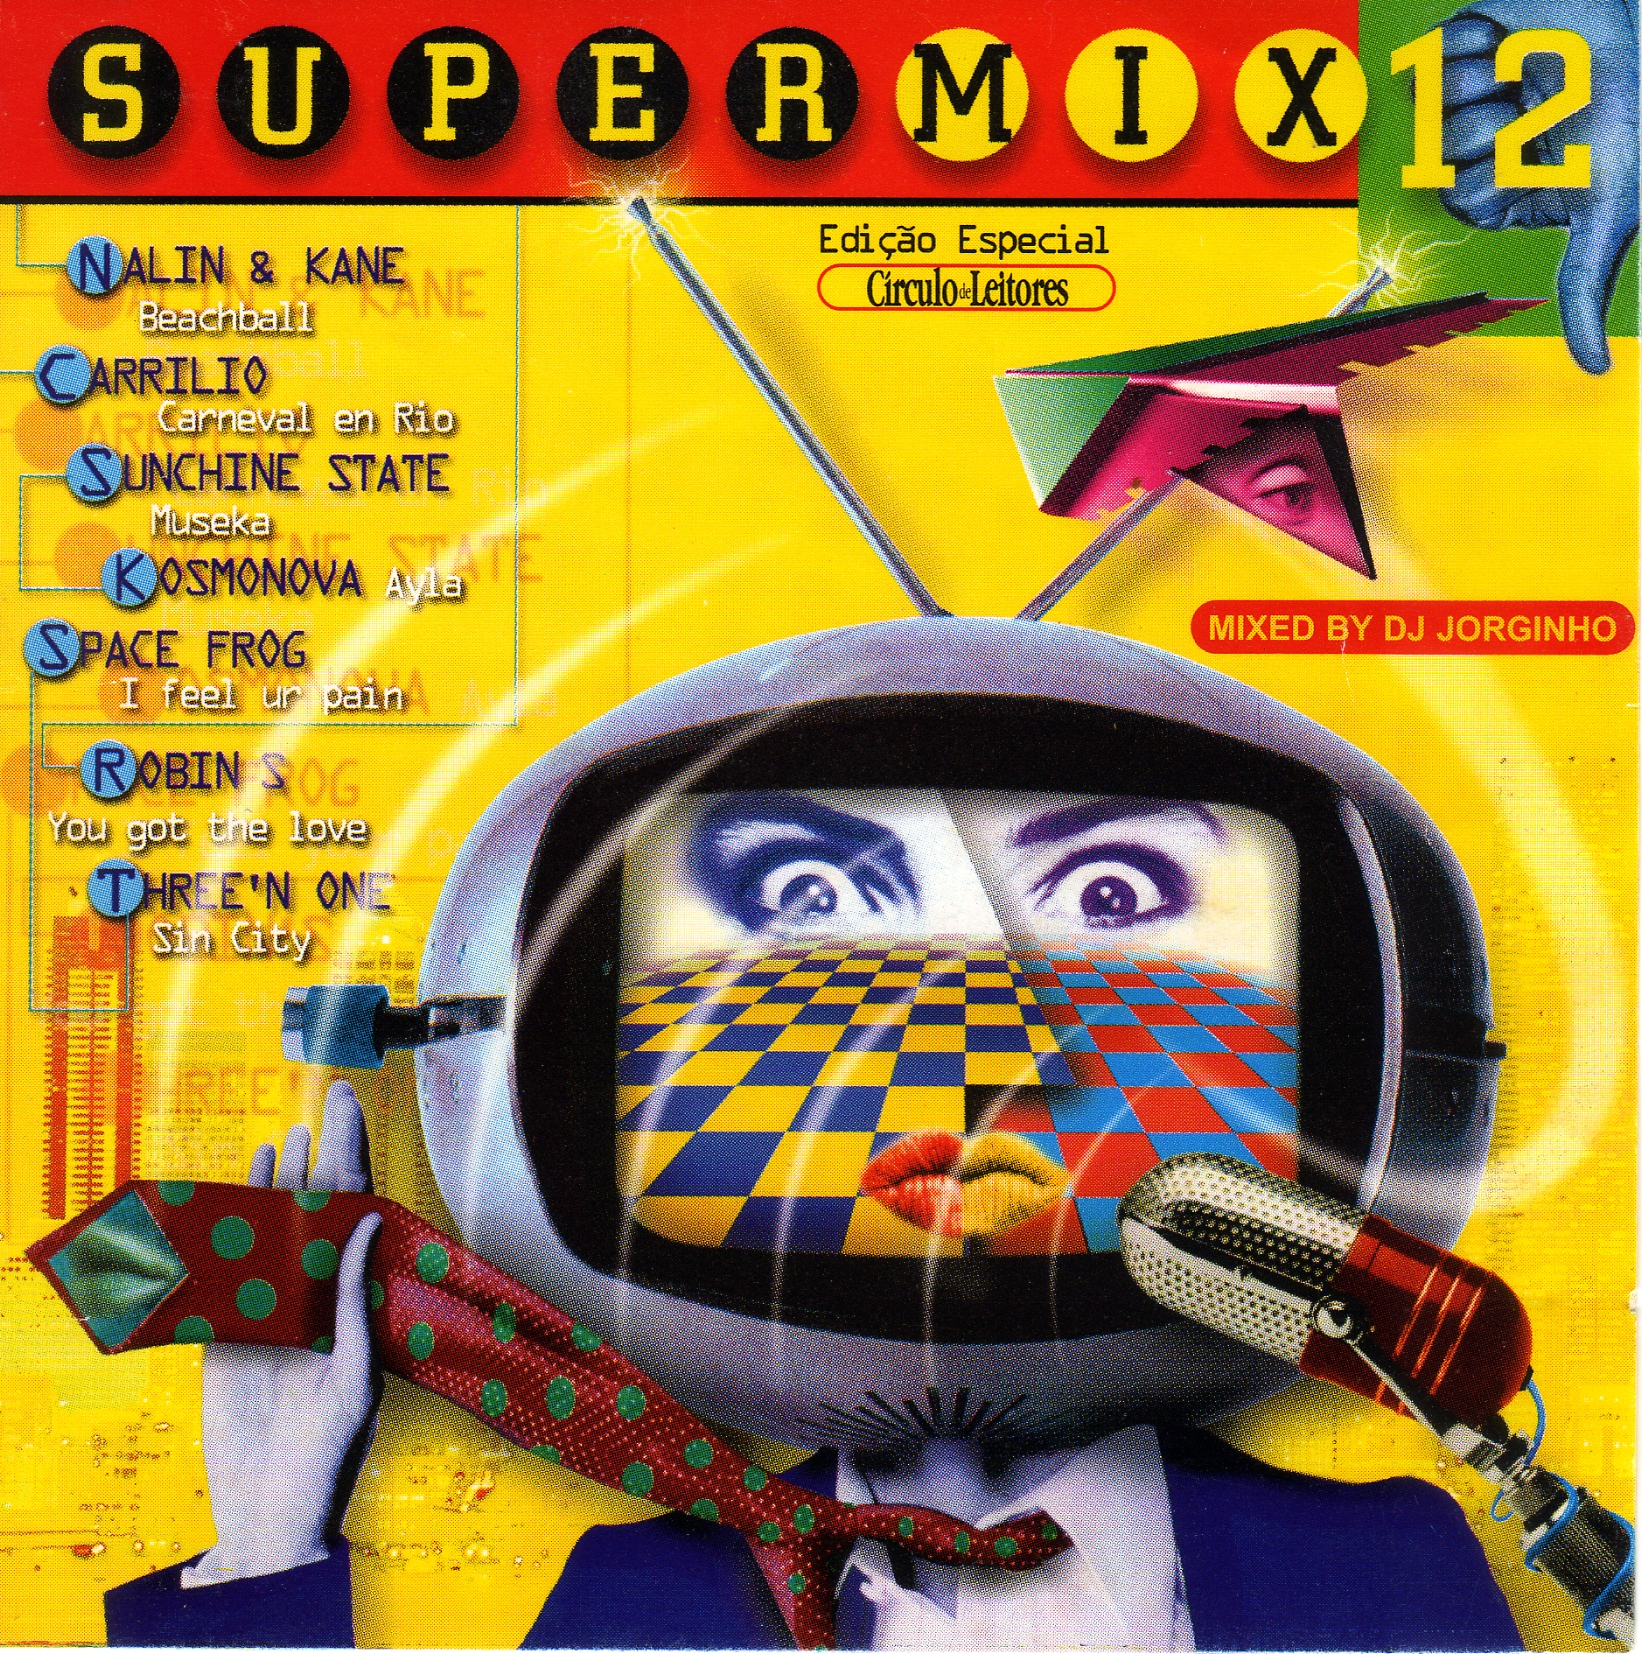 Super Mix 12 (Círculo de Lectores Special Edition) (1997)